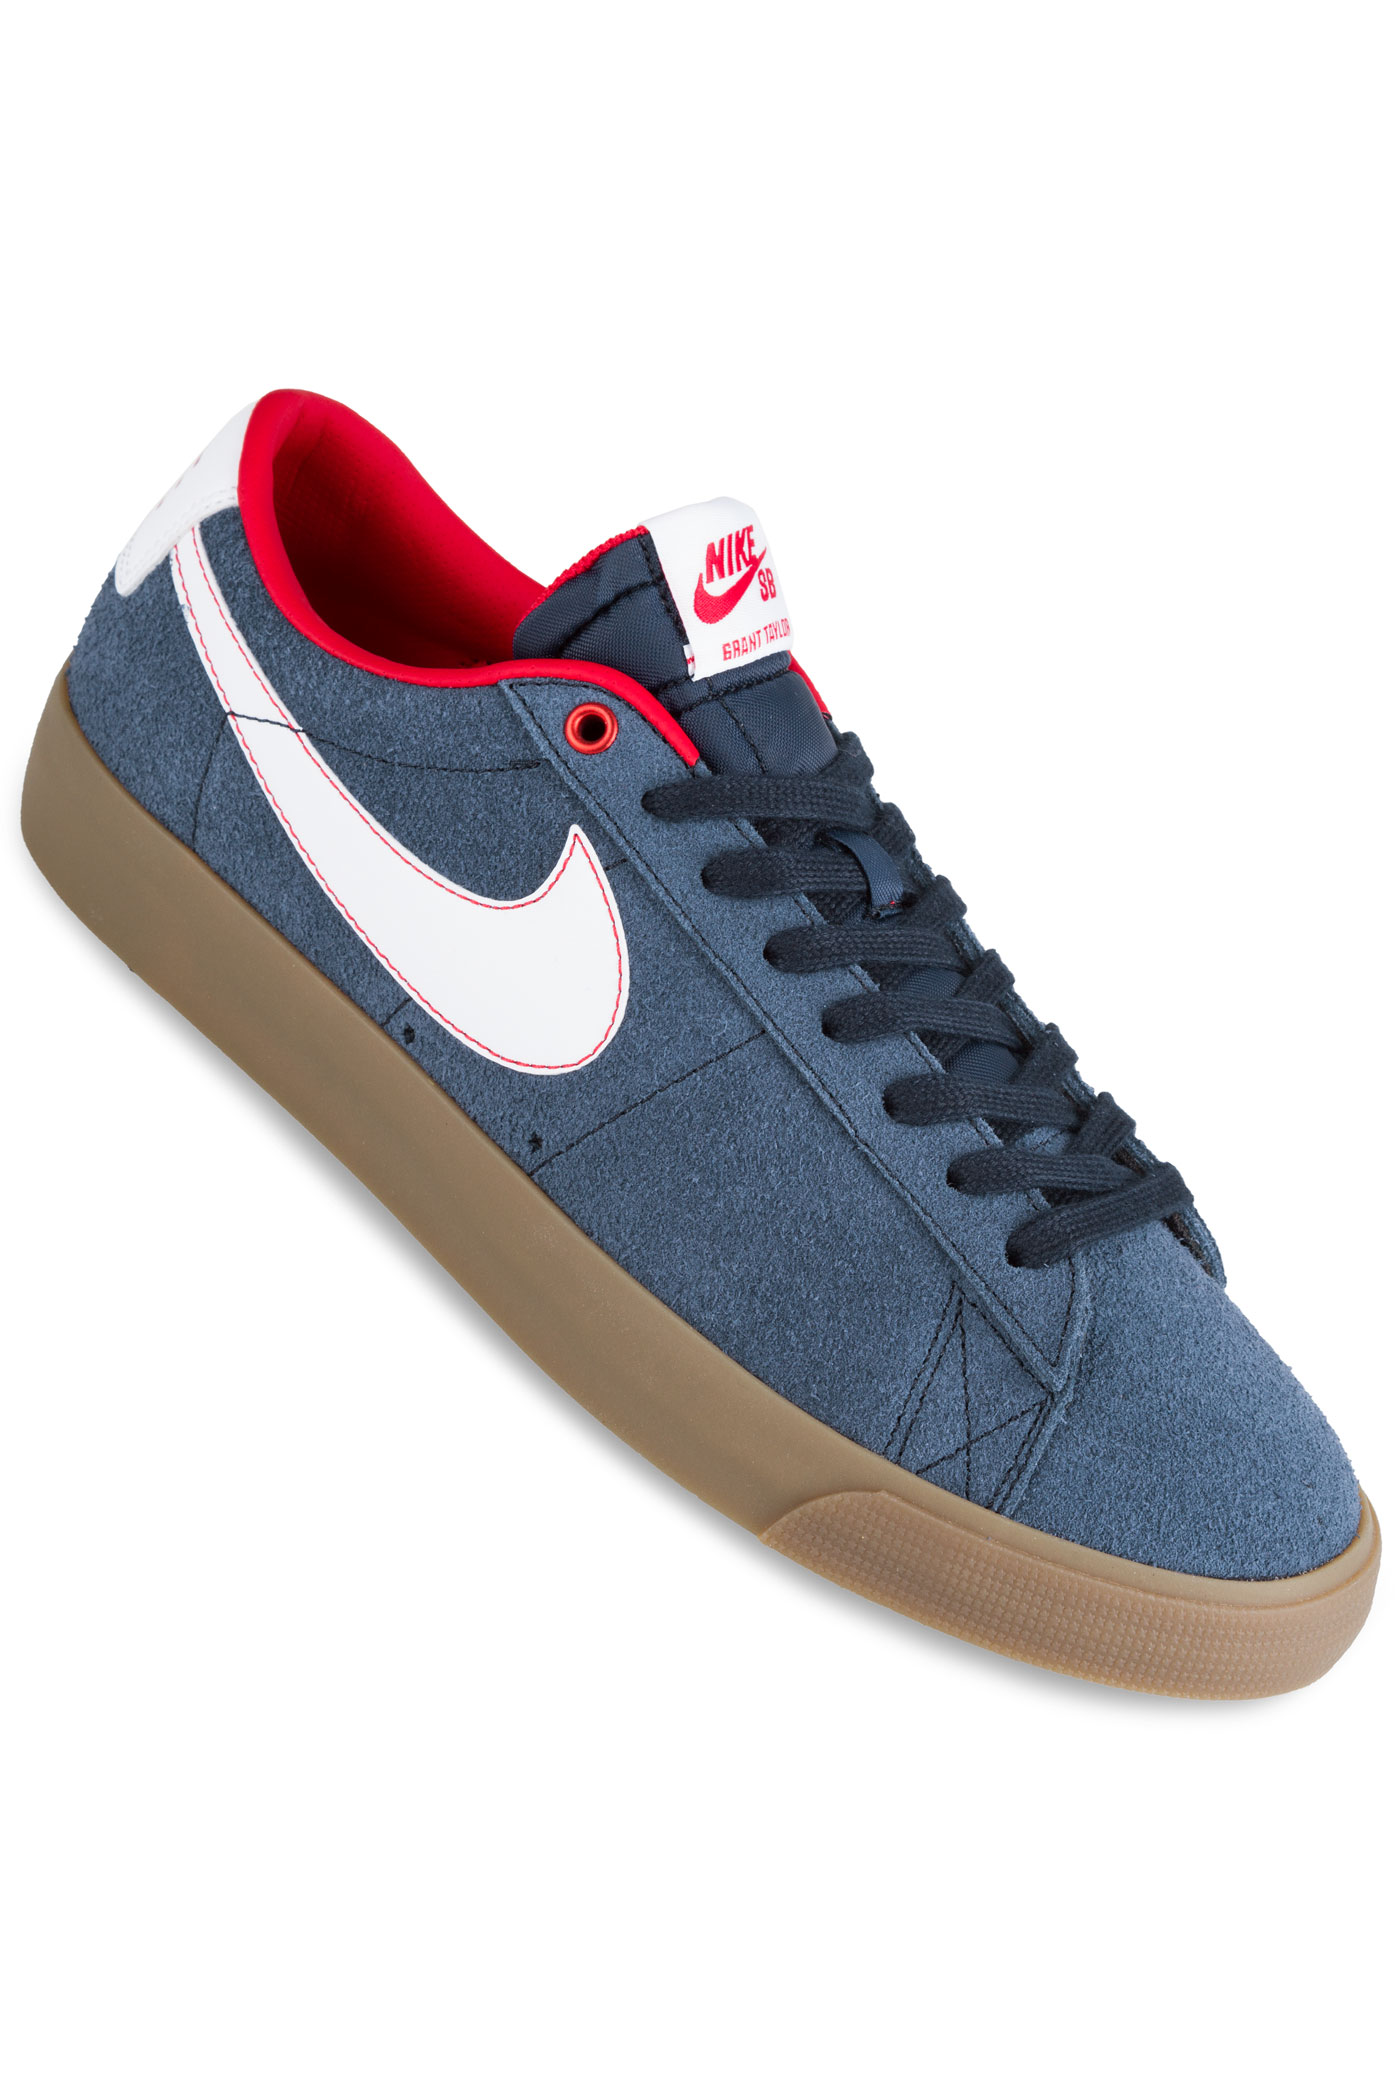 nike sb blazer low grant taylor shoes obsidian white buy. Black Bedroom Furniture Sets. Home Design Ideas